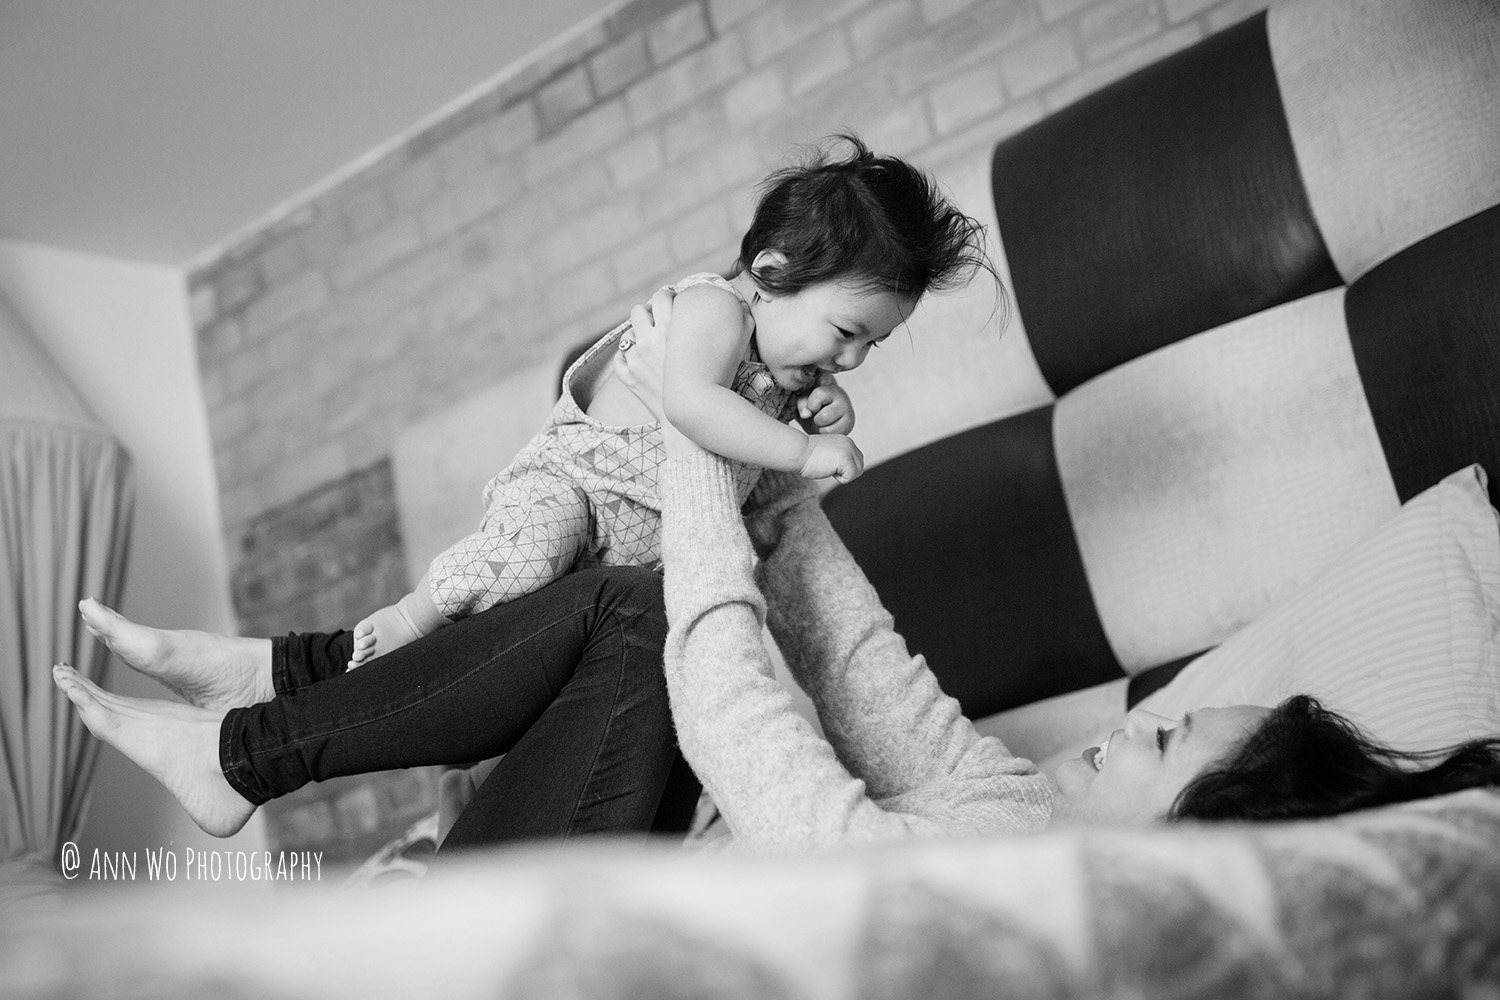 lifestyle-photography-london-family-baby-photoshoot-ann-wo-12.jpg